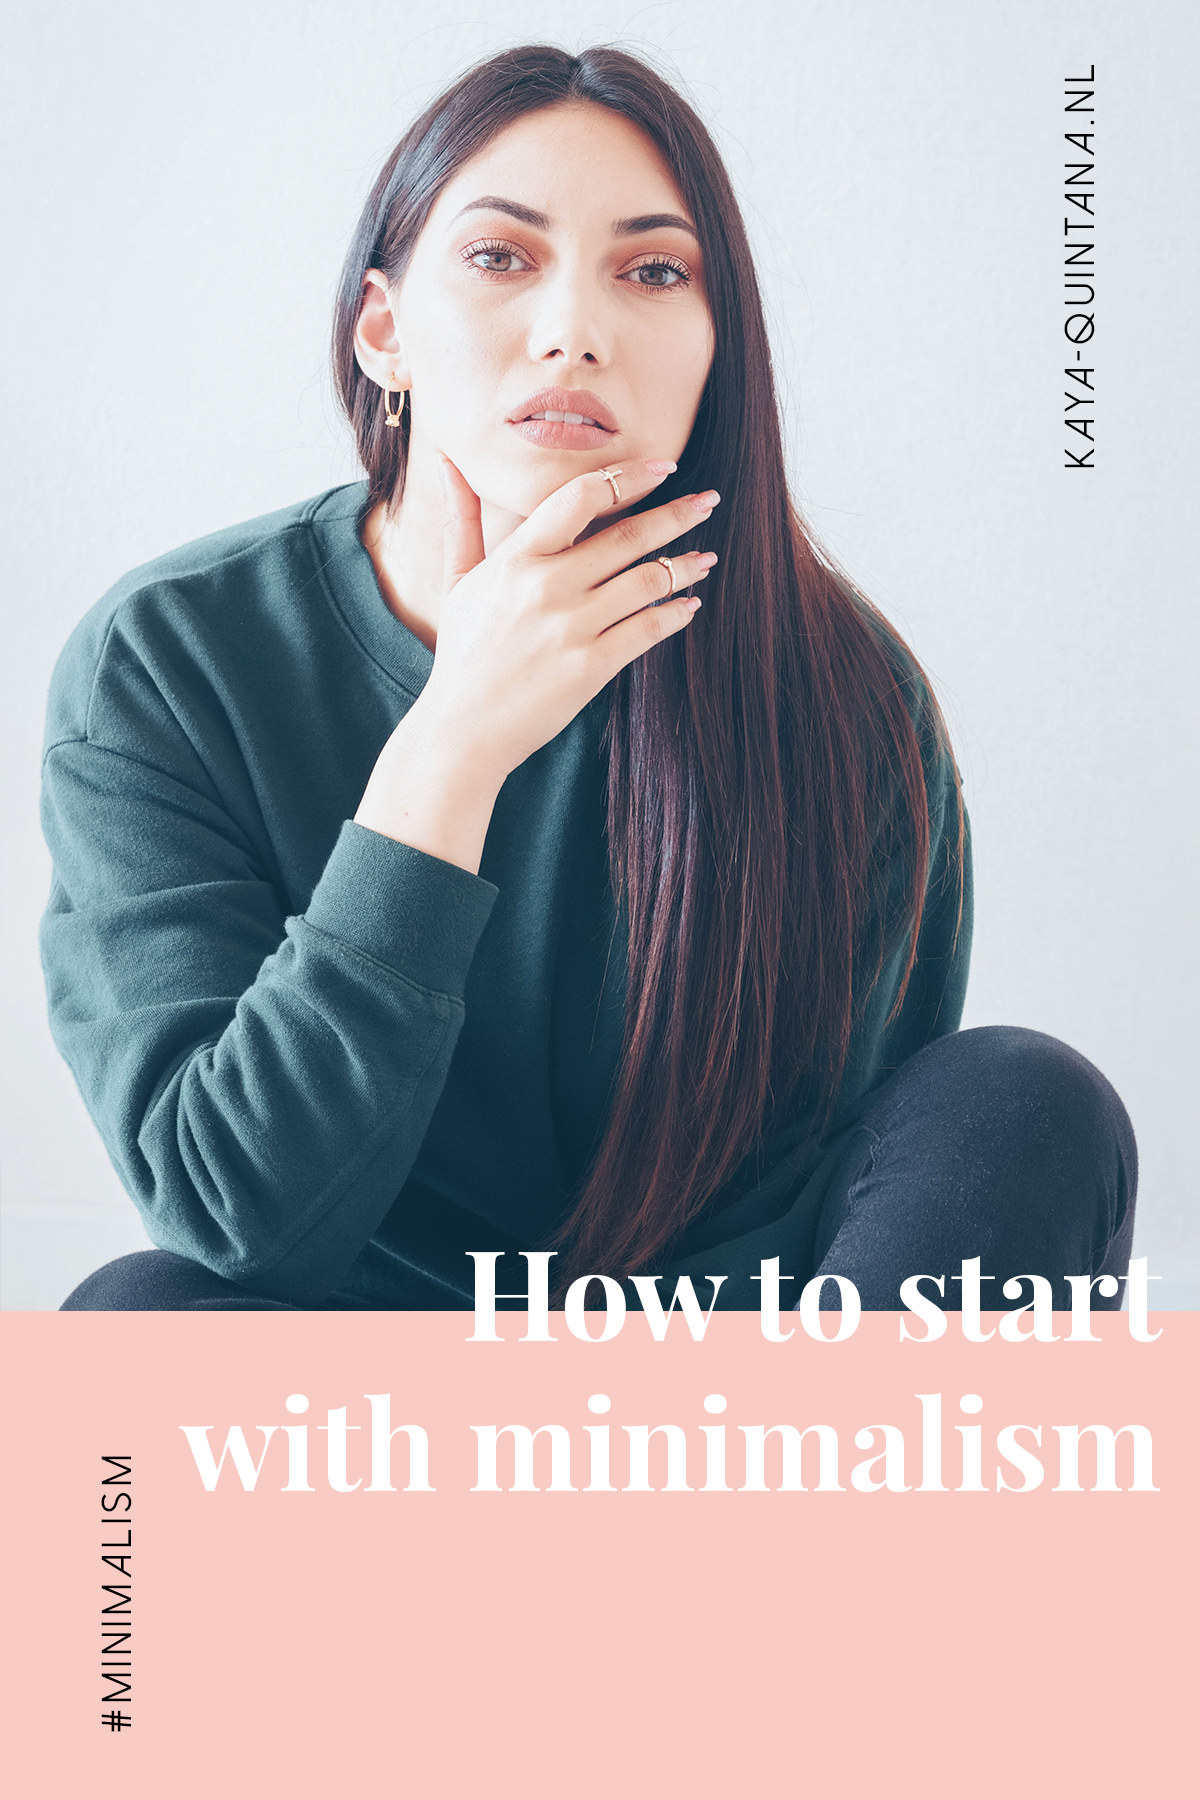 how to start with minimalism